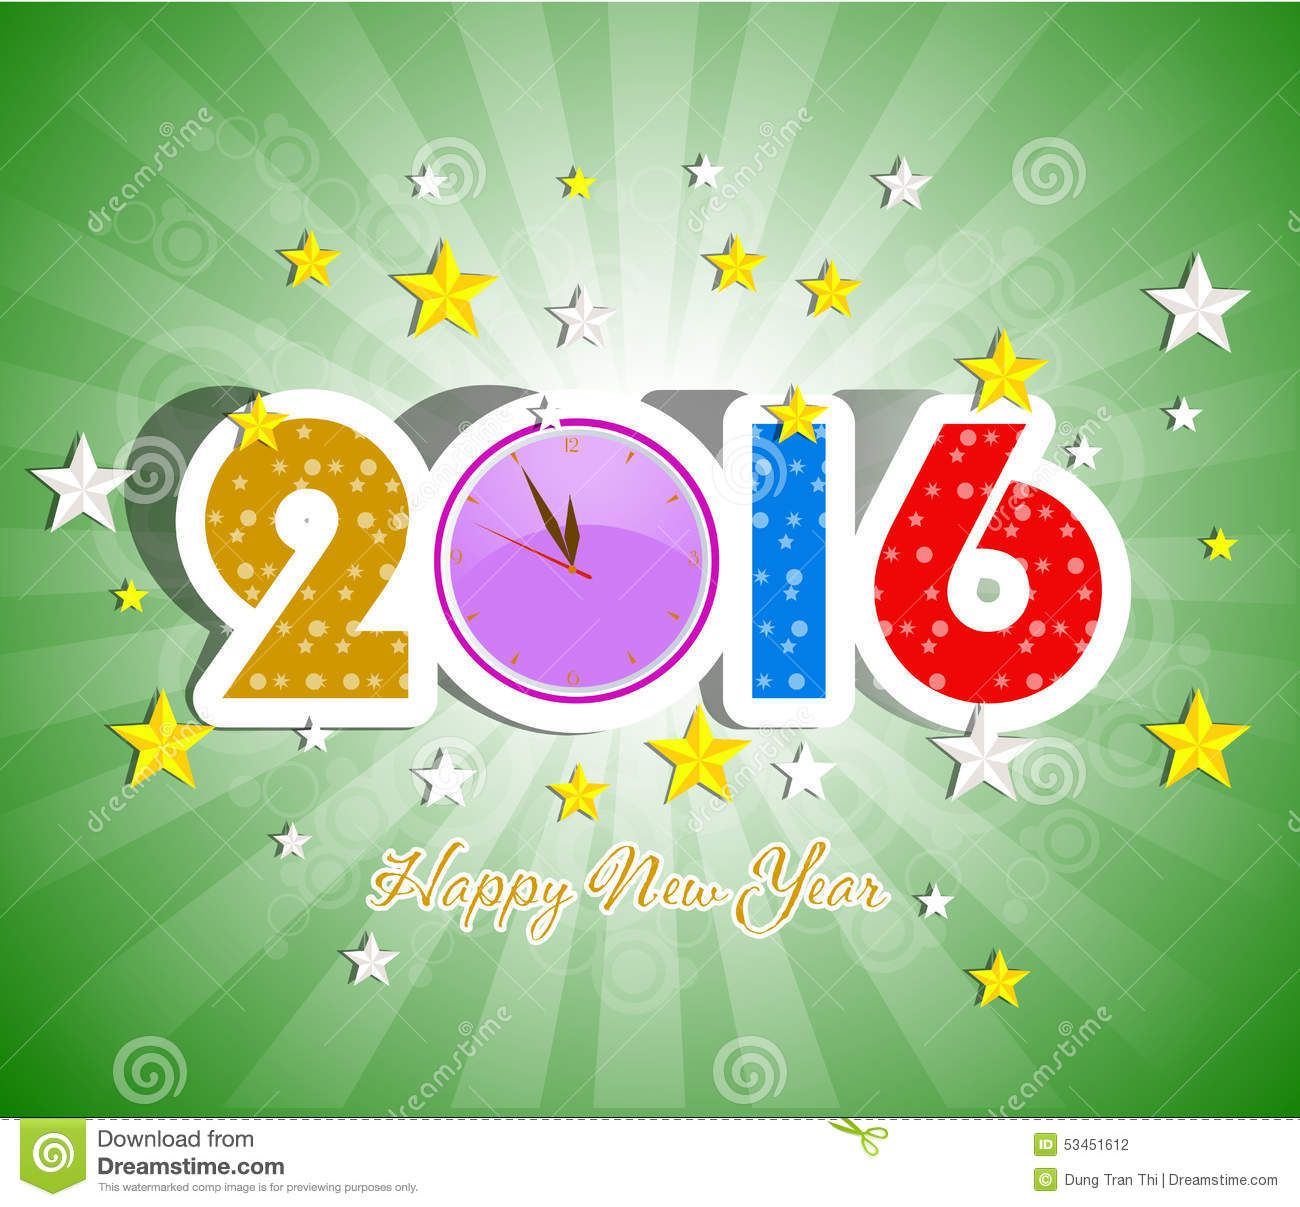 happy new year 2016 images Google Search Happy new